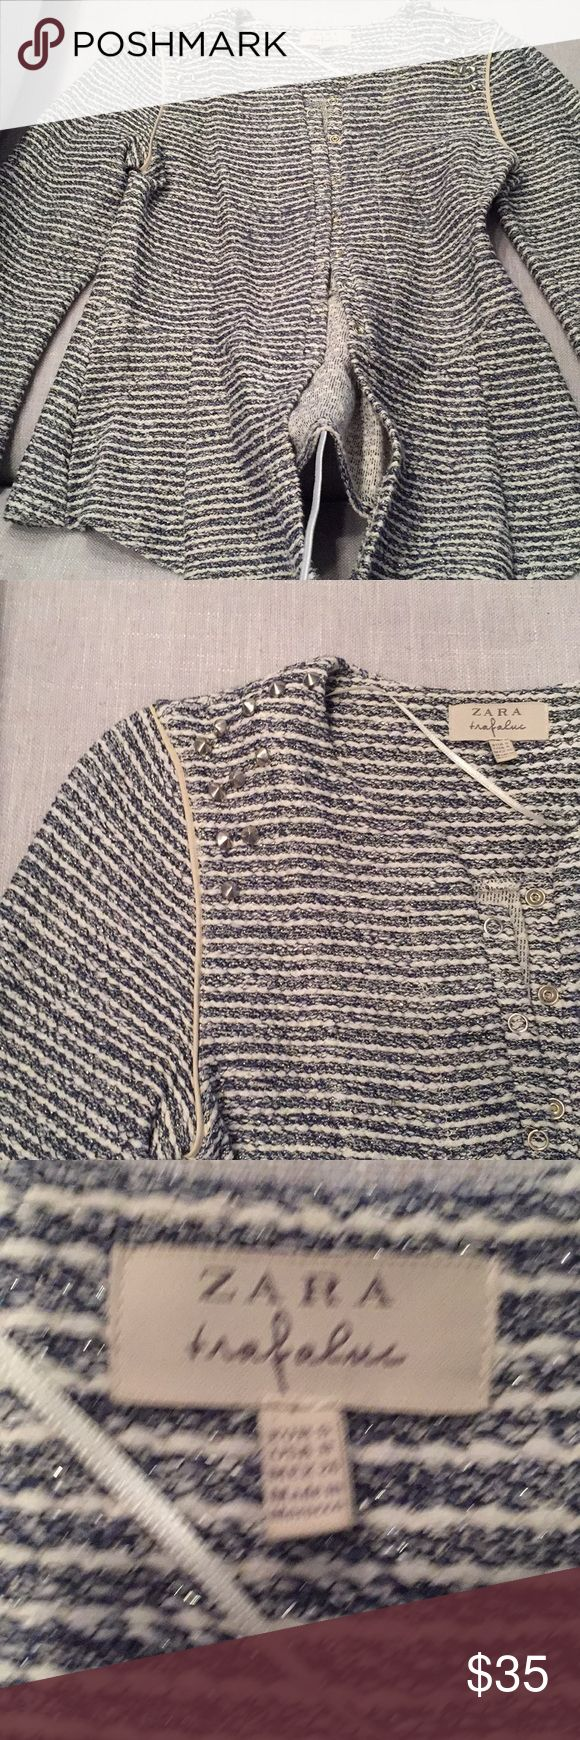 Zara cardigan. Navy and white with silver. S Zara cardigan. Navy and white with silver threading. Silver stud hardware at shoulder. Size S. a little flare it bottom. Zara Sweaters Cardigans